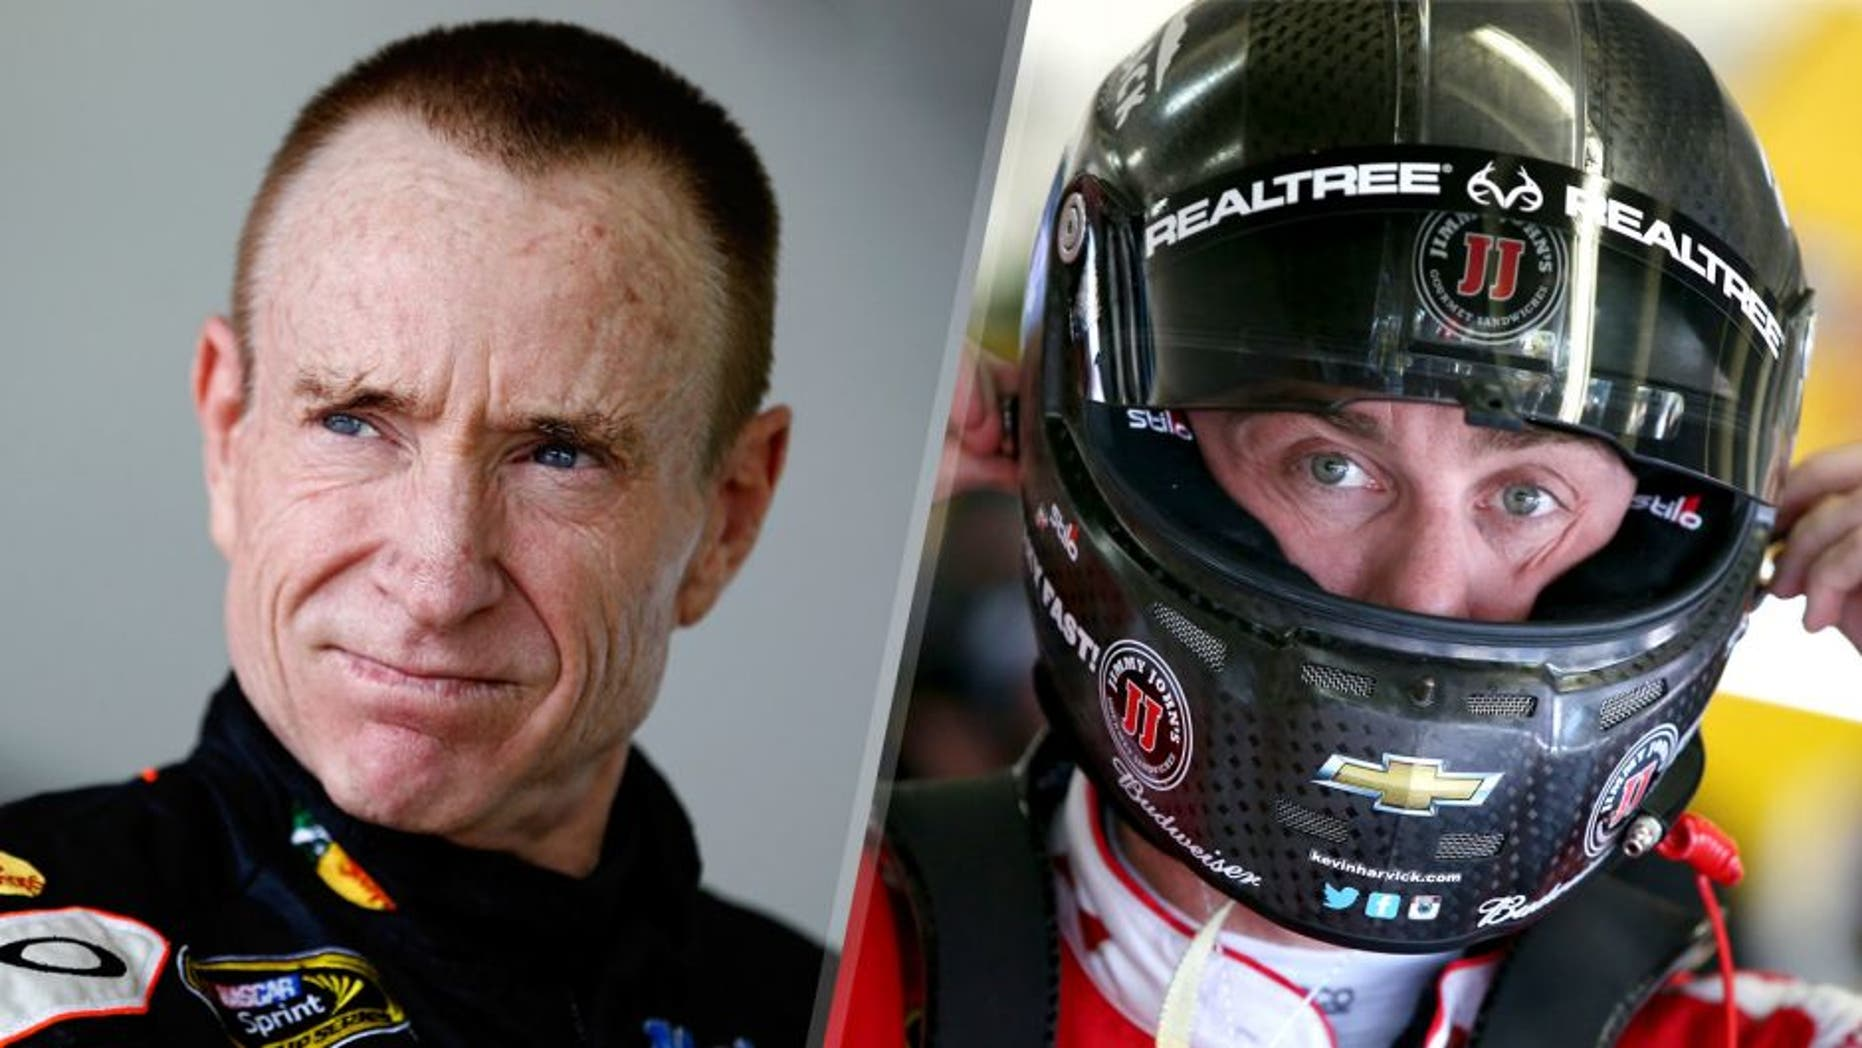 HOMESTEAD, FL - NOVEMBER 16: Mark Martin, driver of the #14 Bass Pro Shops / Mobil 1 Chevrolet, stands in the garage during practice for the NASCAR Sprint Cup Series Ford EcoBoost 400 at Homestead-Miami Speedway on November 16, 2013 in Homestead, Florida. (Photo by Jeff Zelevansky/NASCAR via Getty Images) FORT WORTH, TX - NOVEMBER 06: Kevin Harvick, driver of the #4 Budweiser/Jimmy John's Chevrolet, adjusts his equipment in the garage area during practice for the NASCAR Sprint Cup Series AAA Texas 500 at Texas Motor Speedway on November 6, 2015 in Fort Worth, Texas. (Photo by Sean Gardner/Getty Images for Texas Motor Speedway)